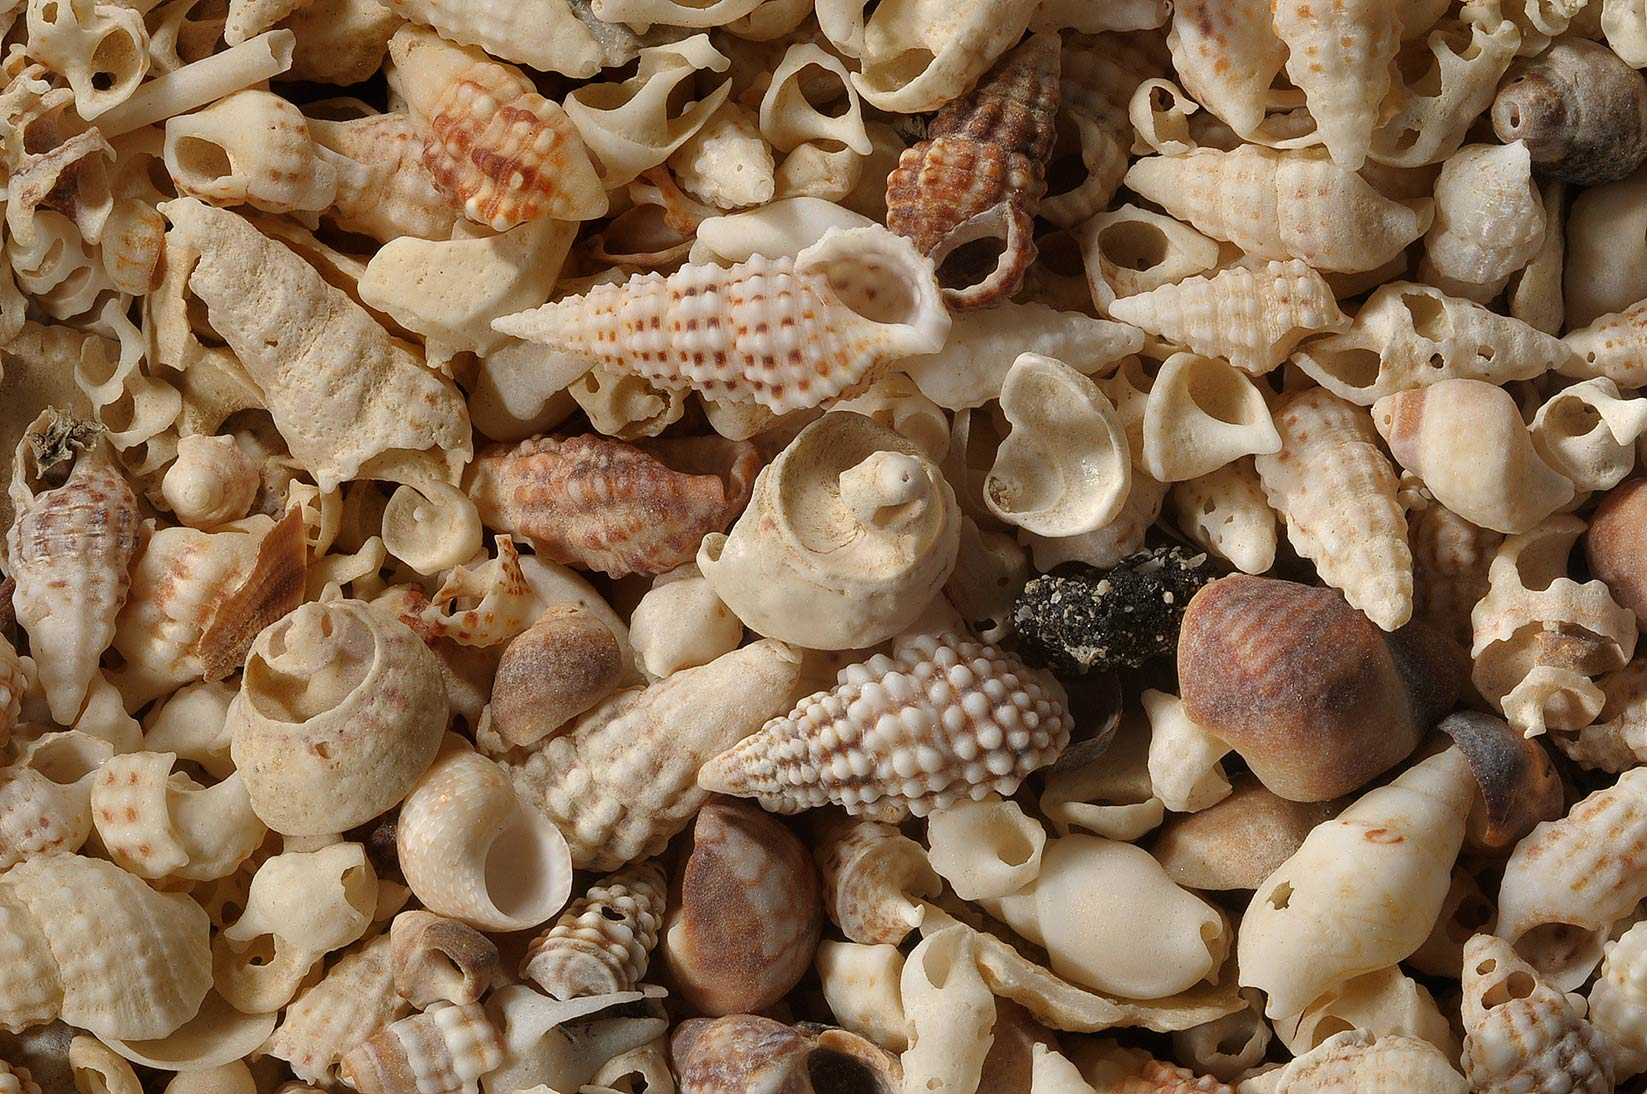 Accumulation of sea shells in Al Aaliya Island (Jazirat al Aliyah). Qatar